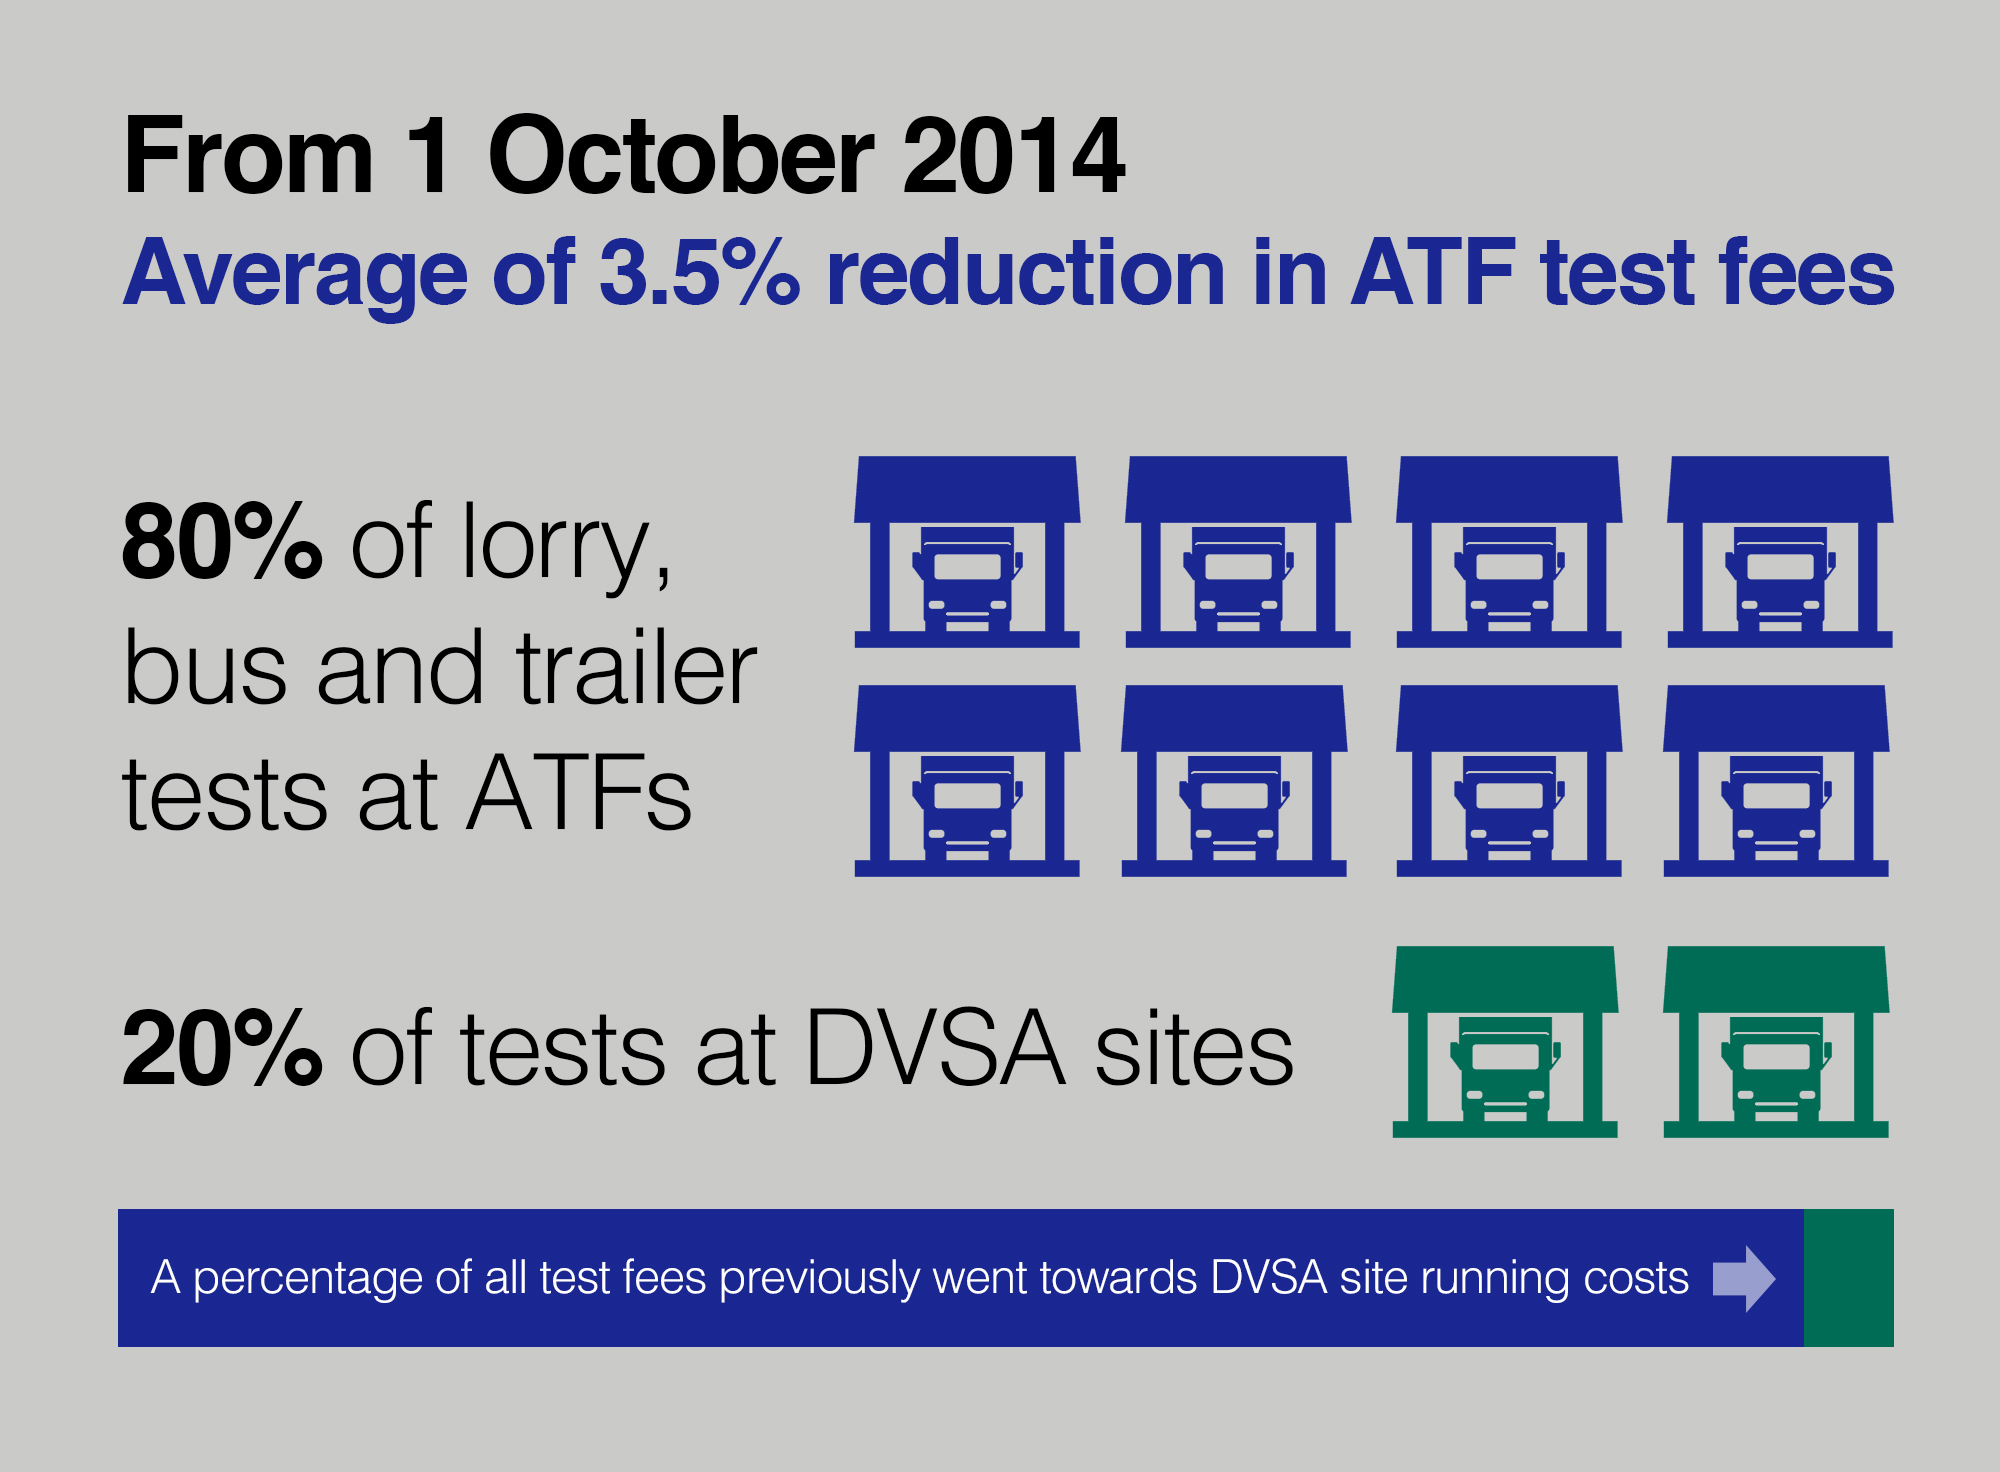 Diagram showing test fee reductions from 1 October 2014